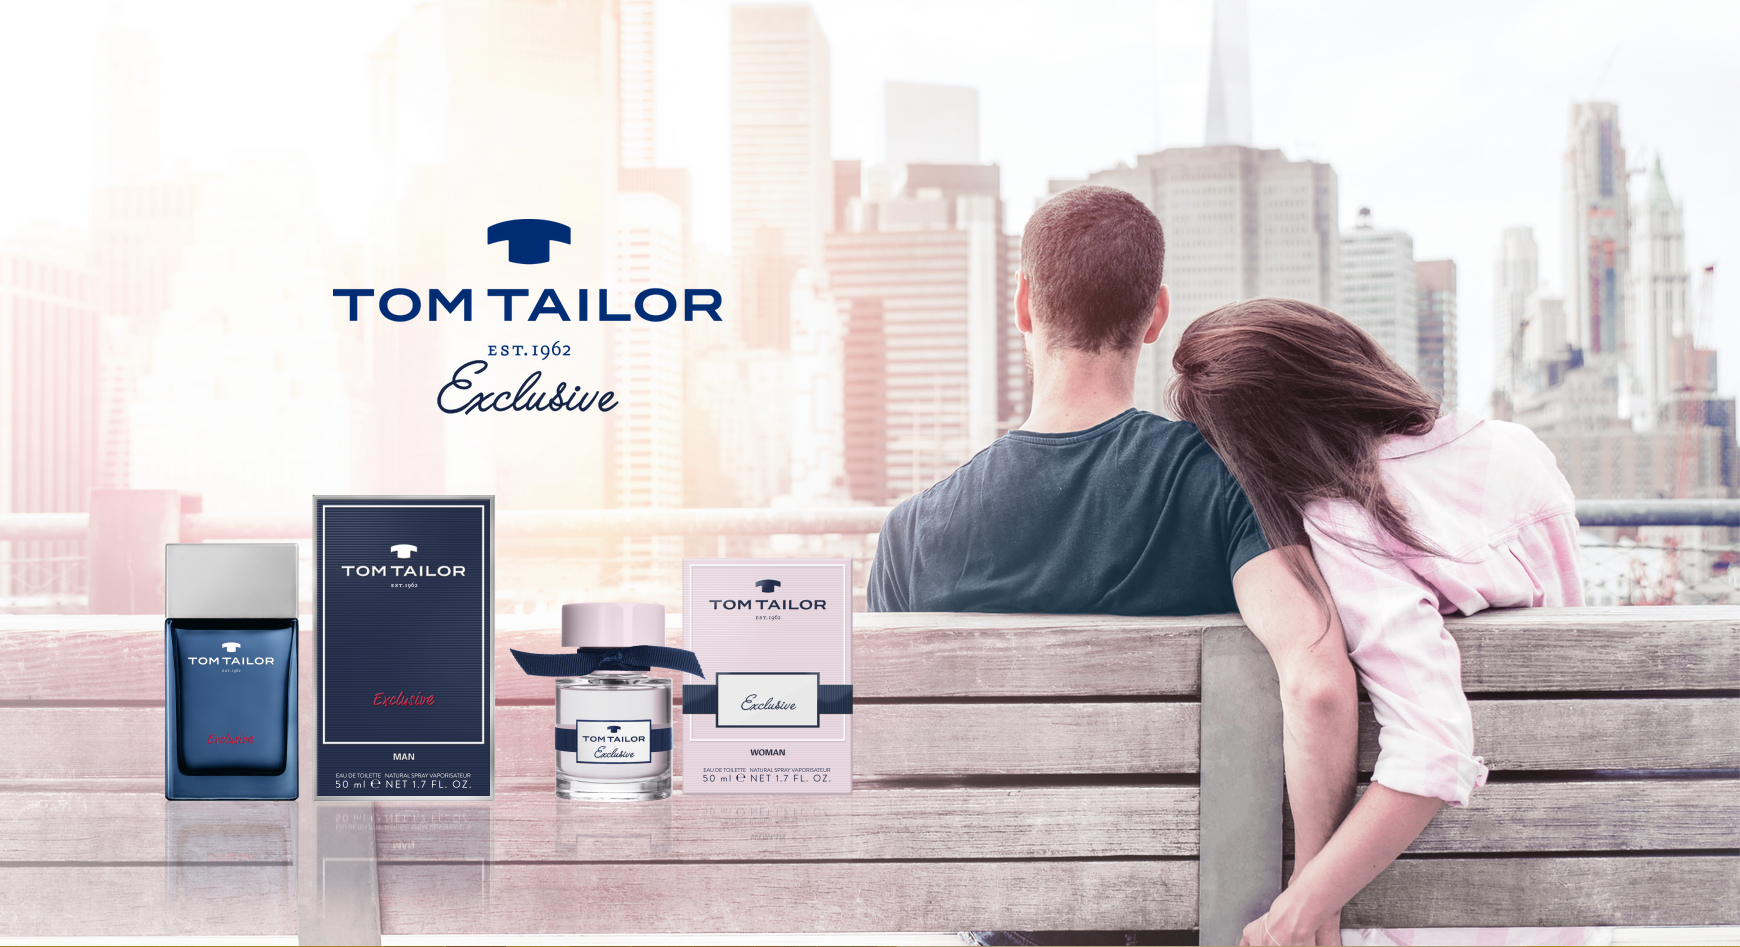 Tom Railor Tom Tailor Exclusive Woman Tom Tailor For Women